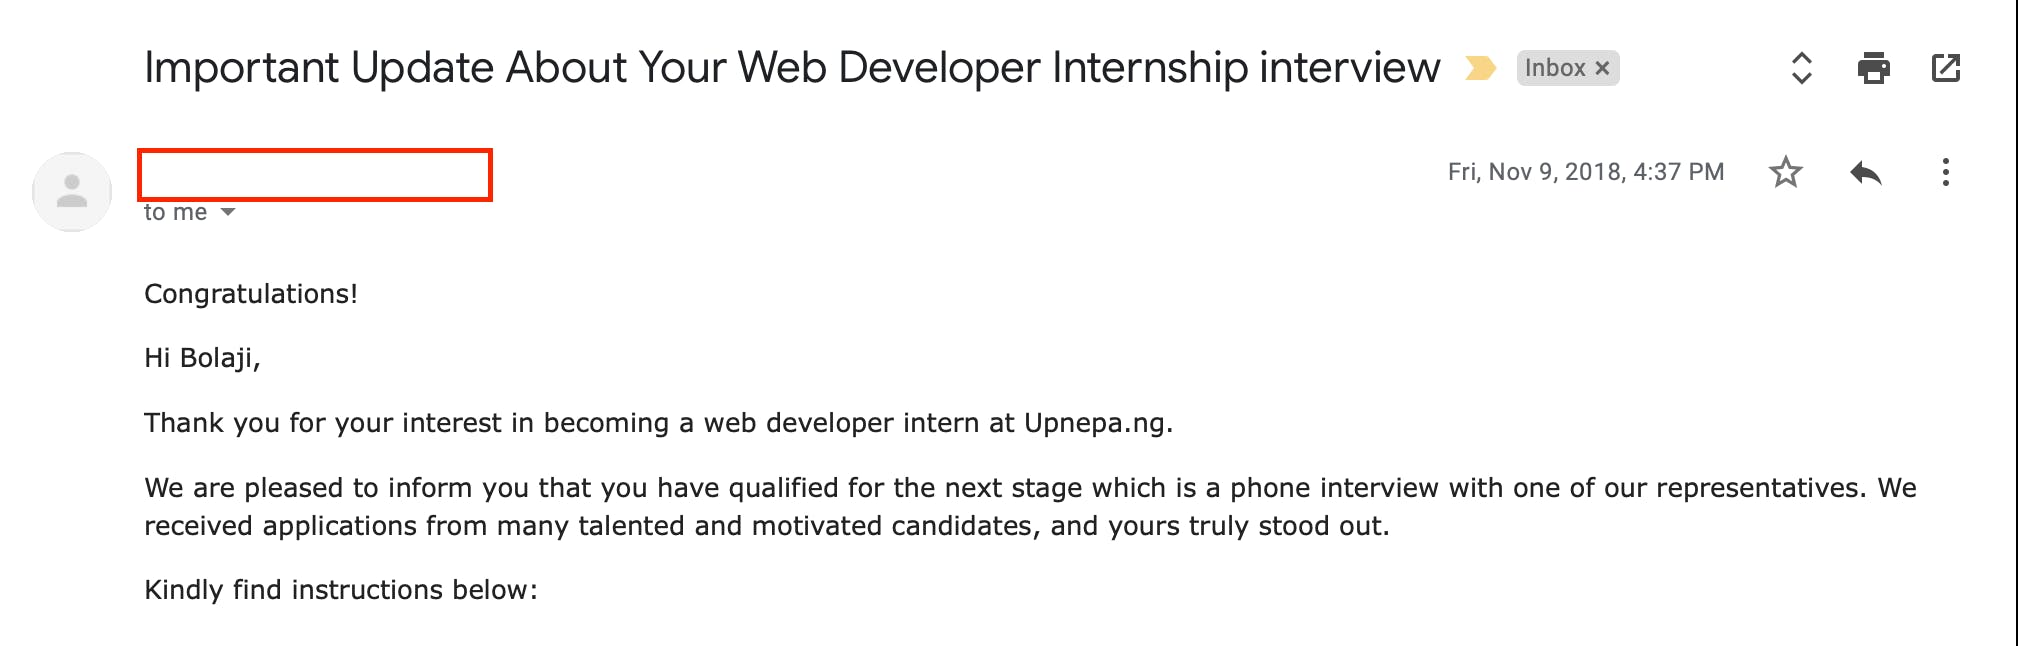 Interview update email